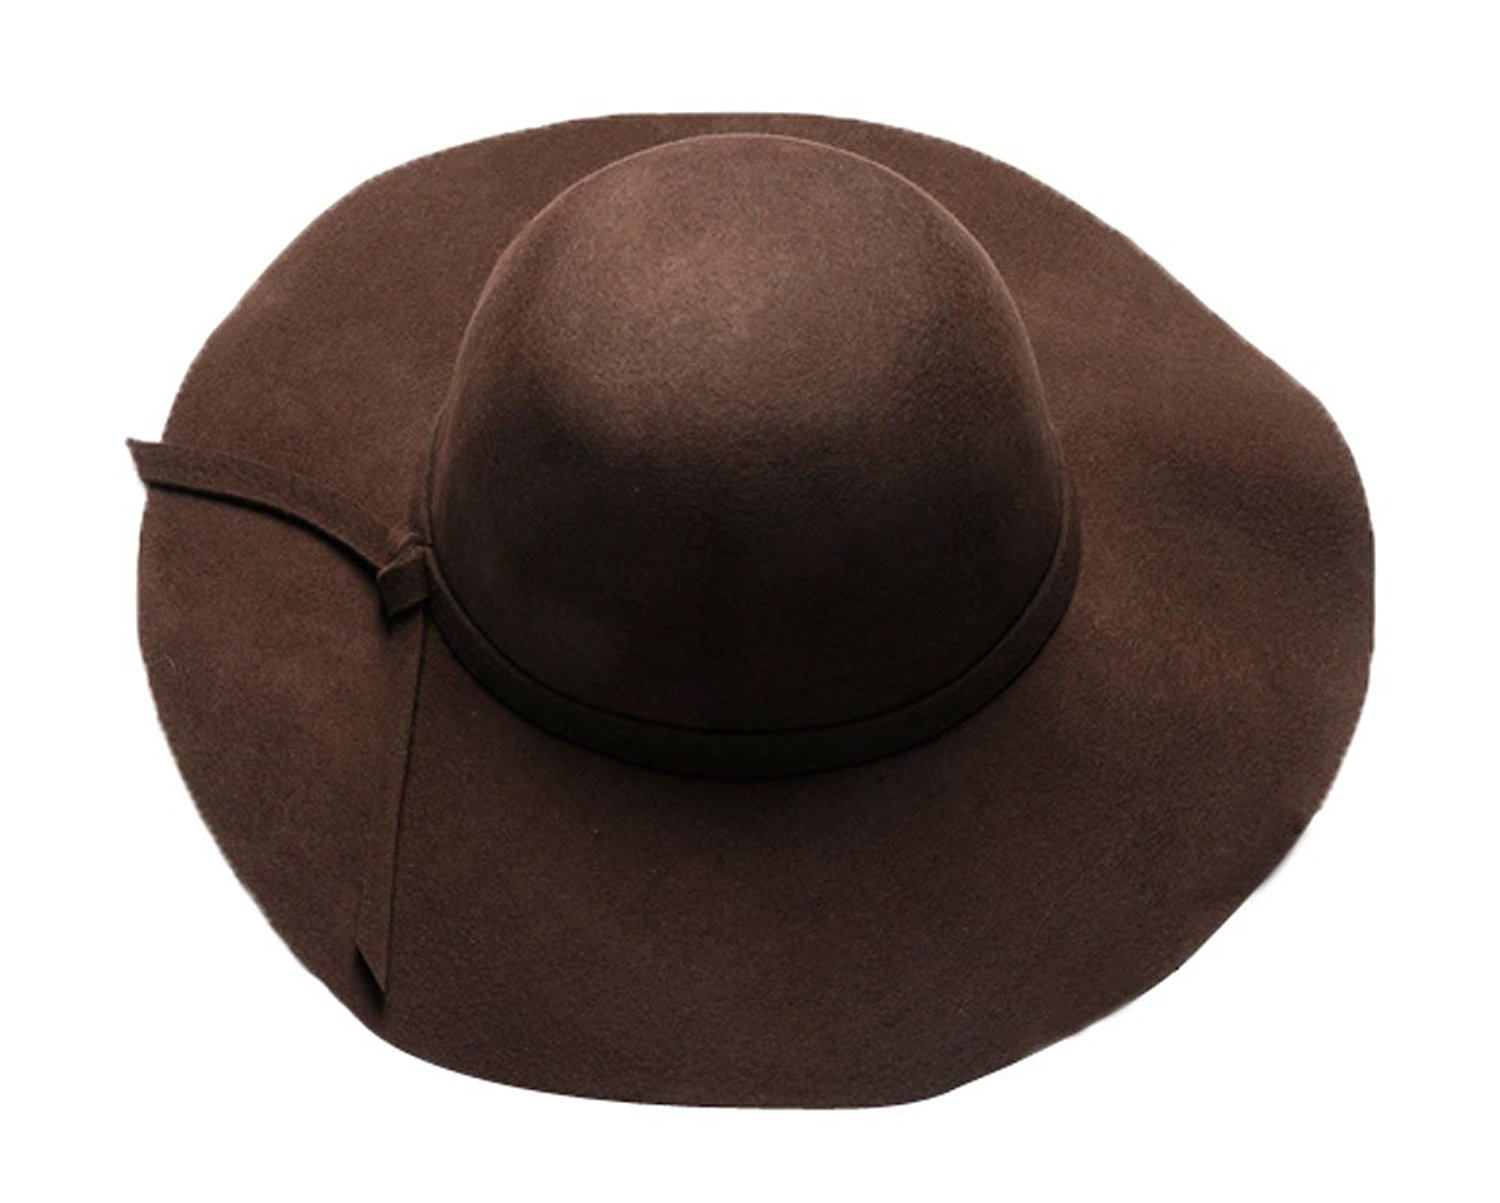 3a3f4e1c458 Get Quotations · The Trendy Women Felt Wide Brim Fedora Top Hat  Coffee